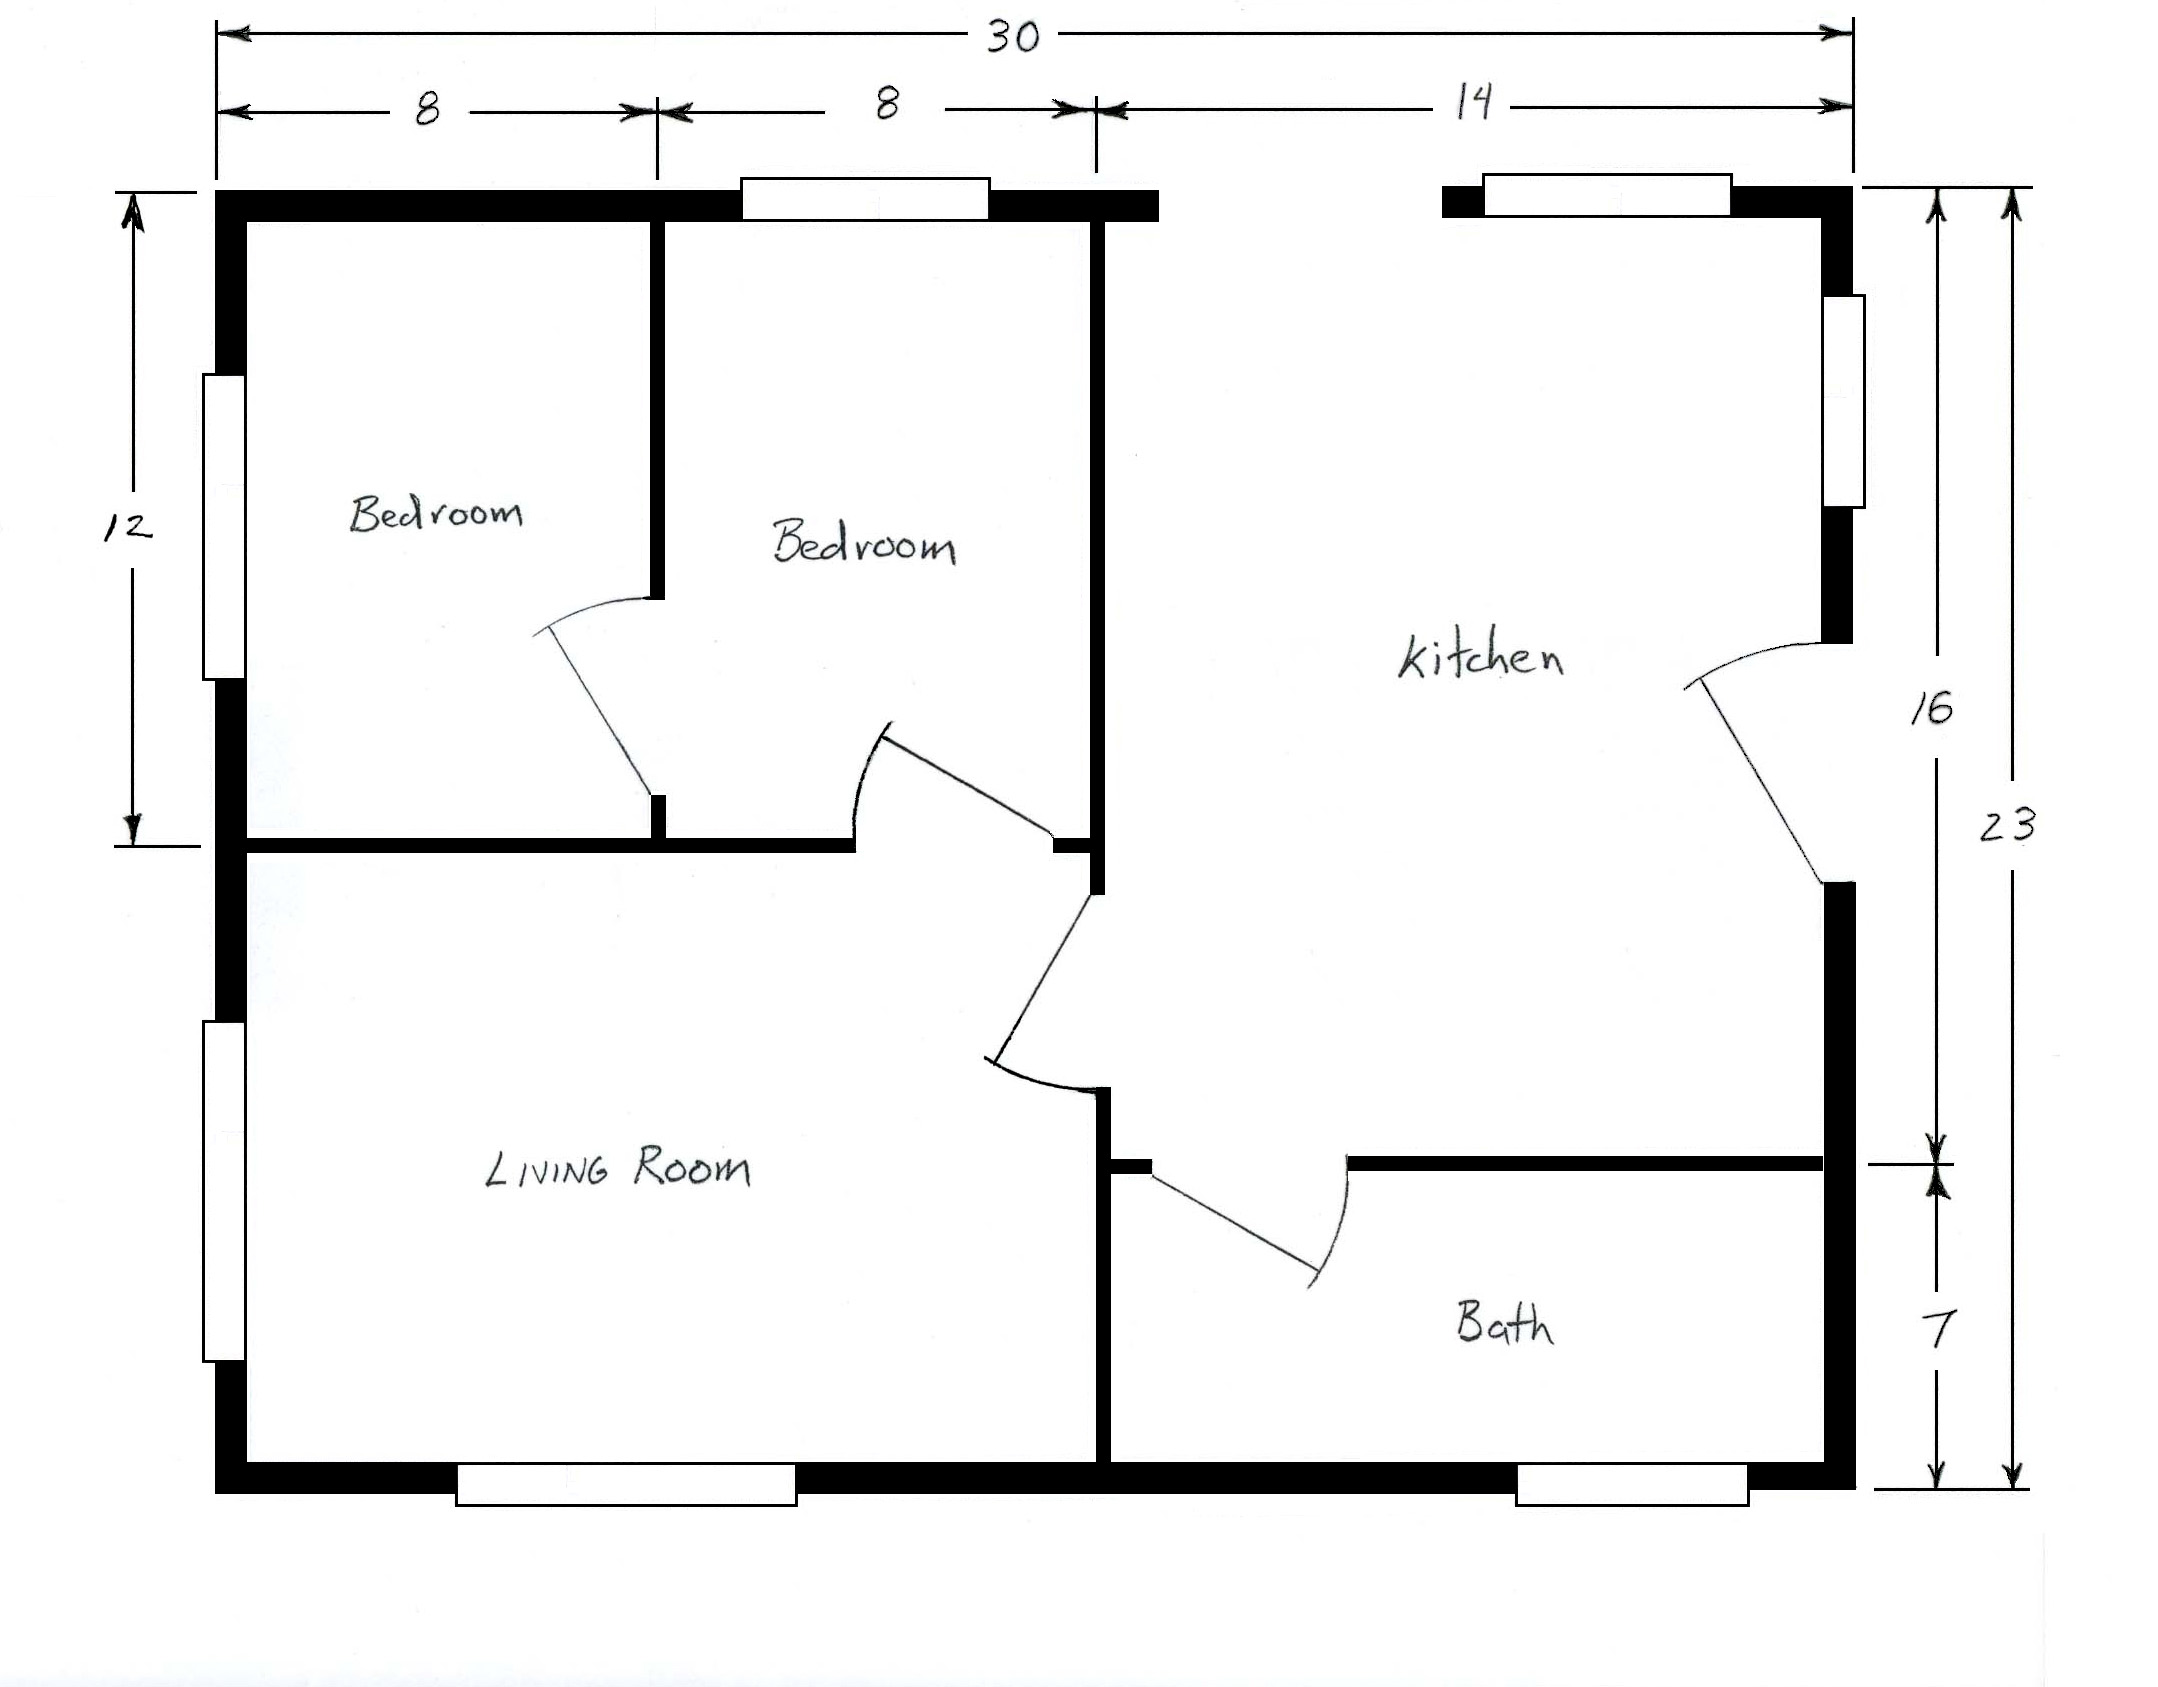 Free home plans sample house floor plans for Free home floor plans